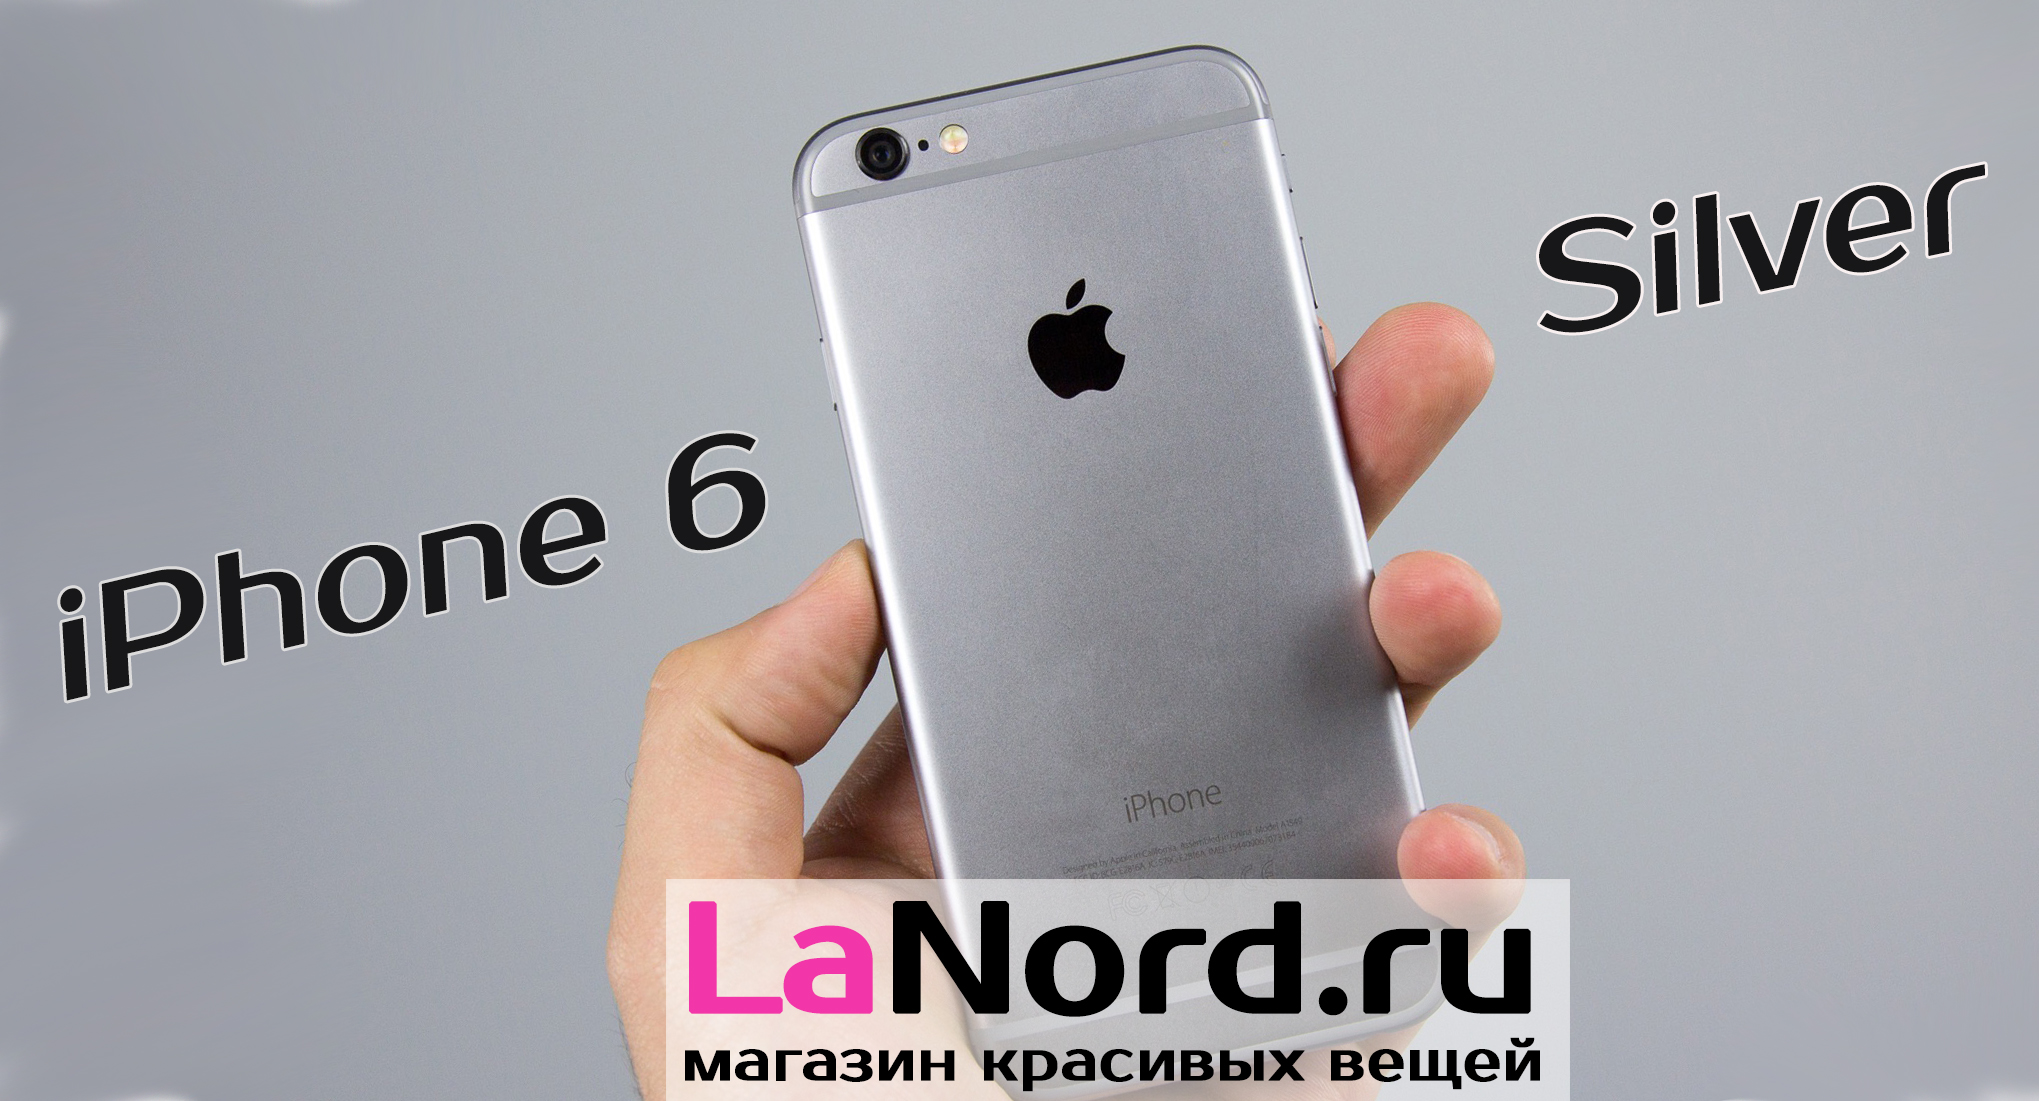 Apple iPhone 6 16GB Silver (белый) восстановленный